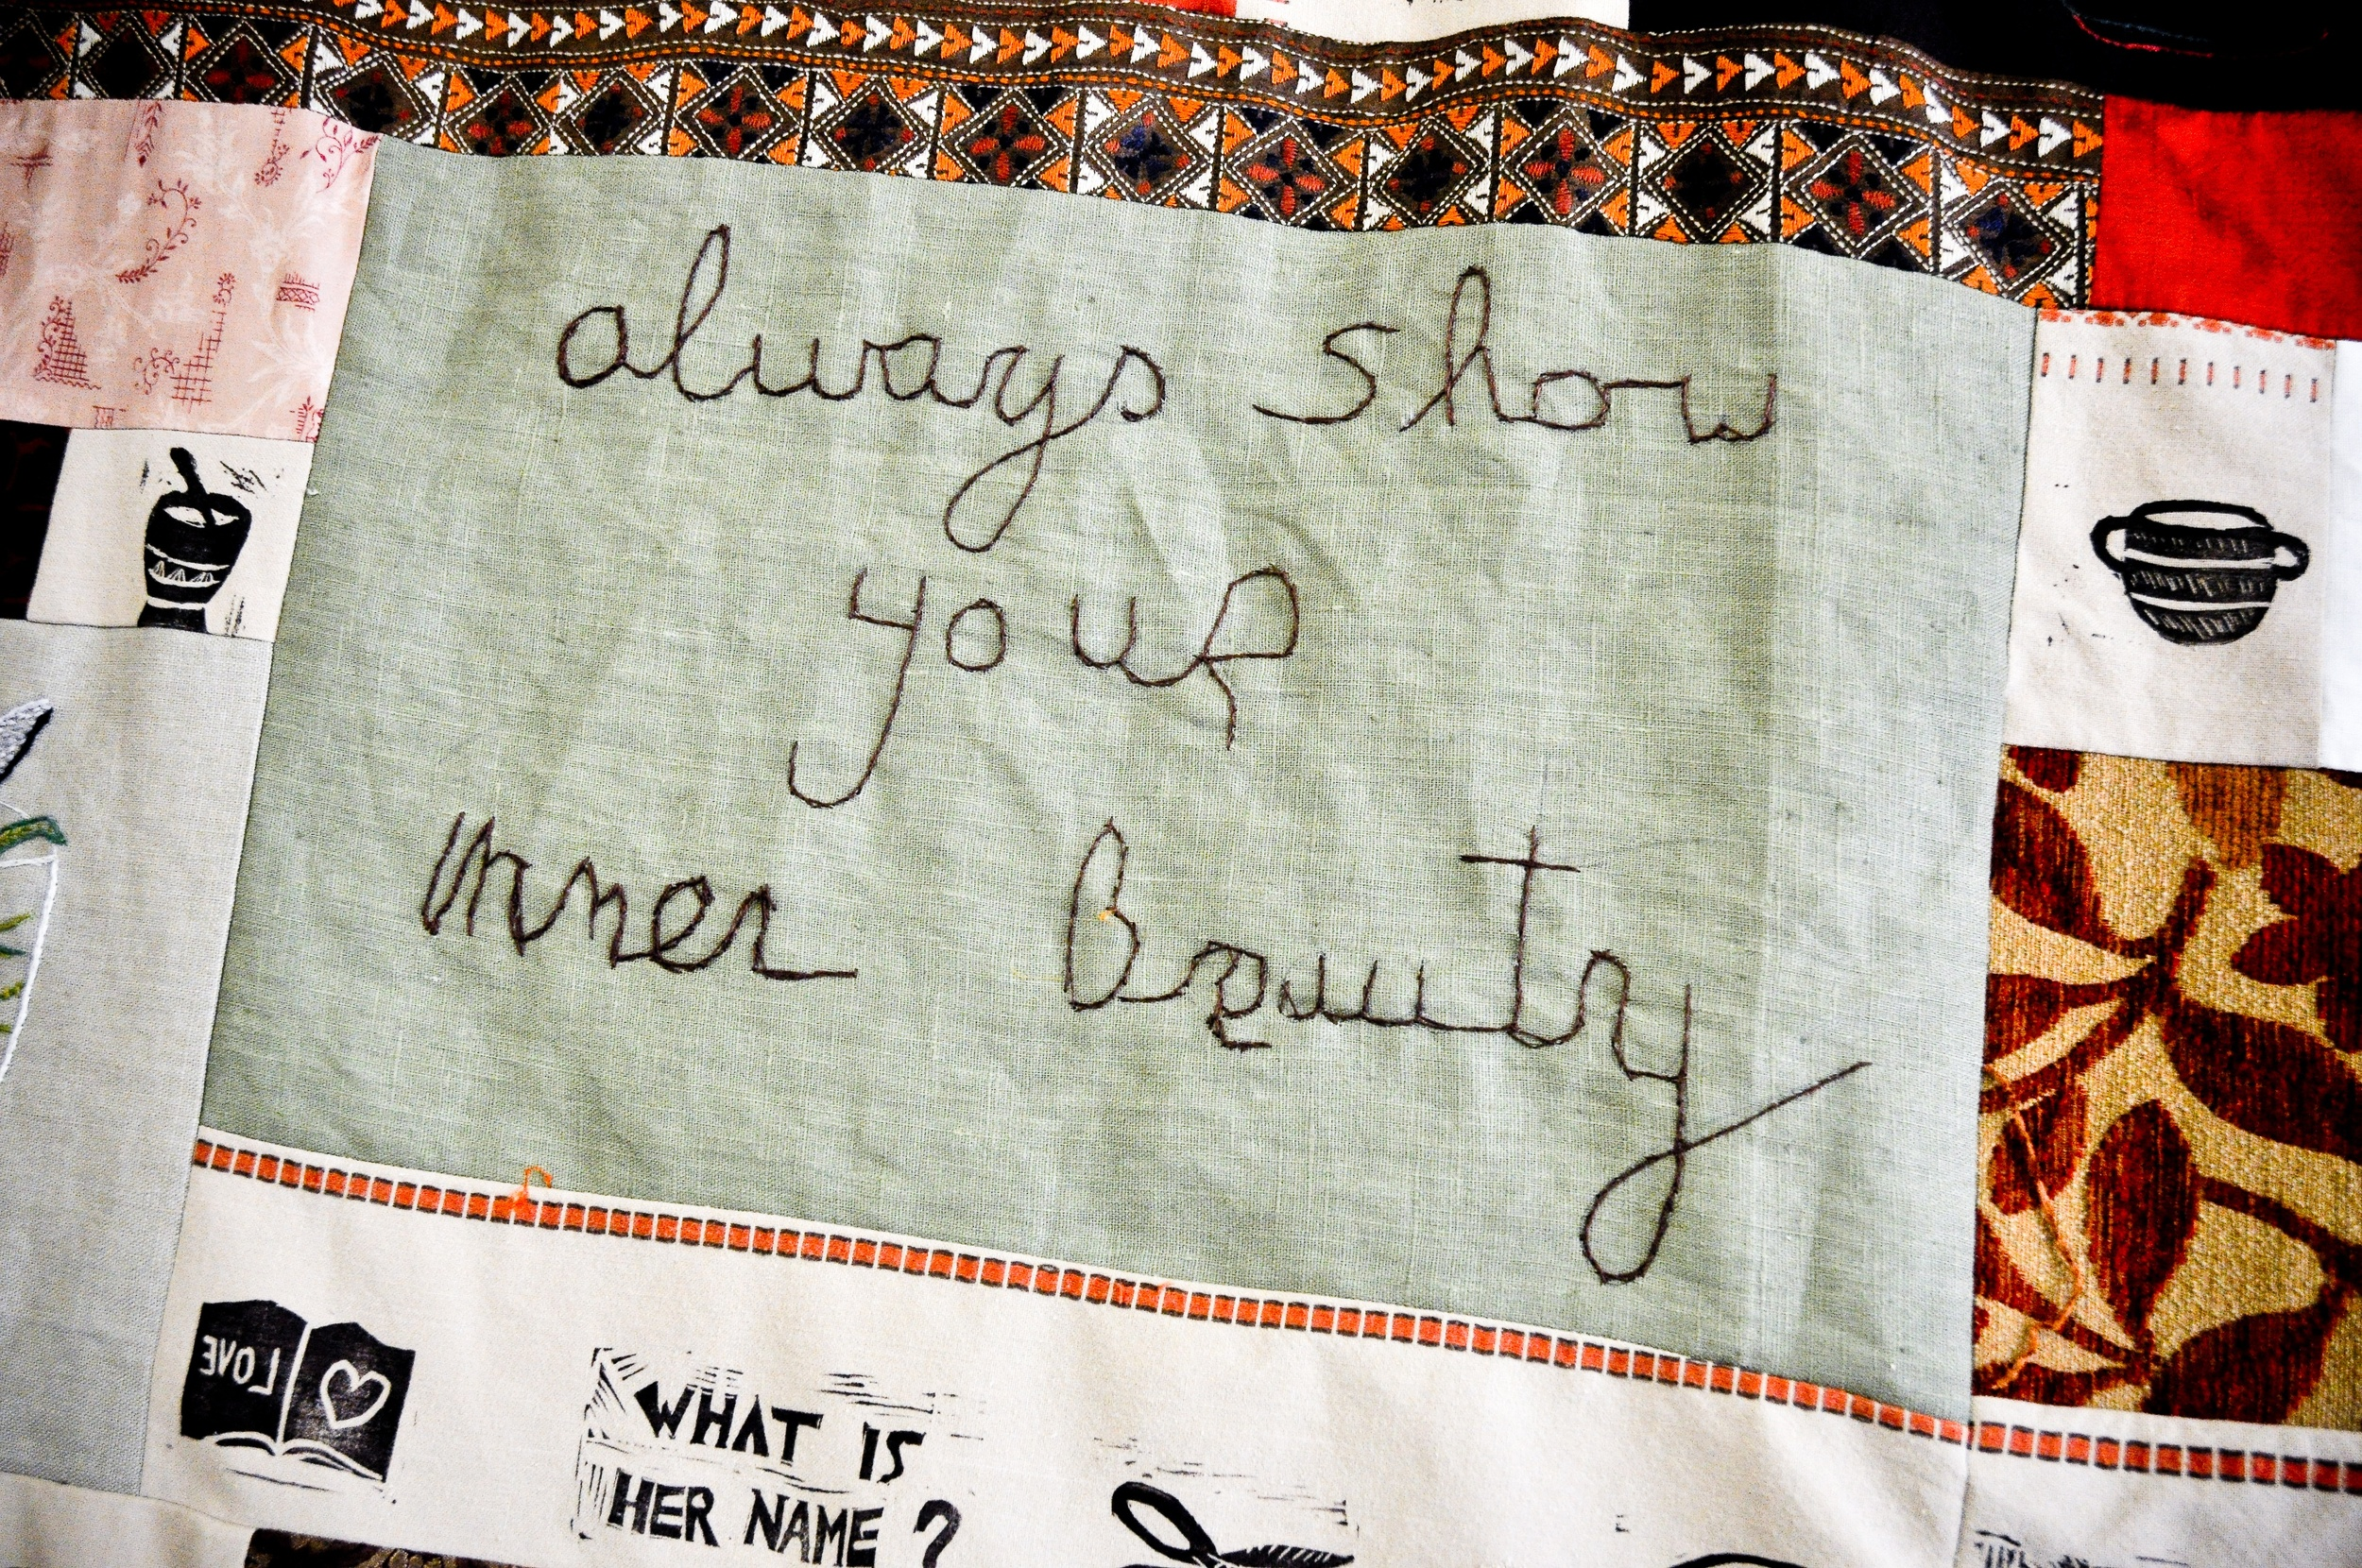 WSR_09_Memory Quilt_Always show your inner beauty.jpg